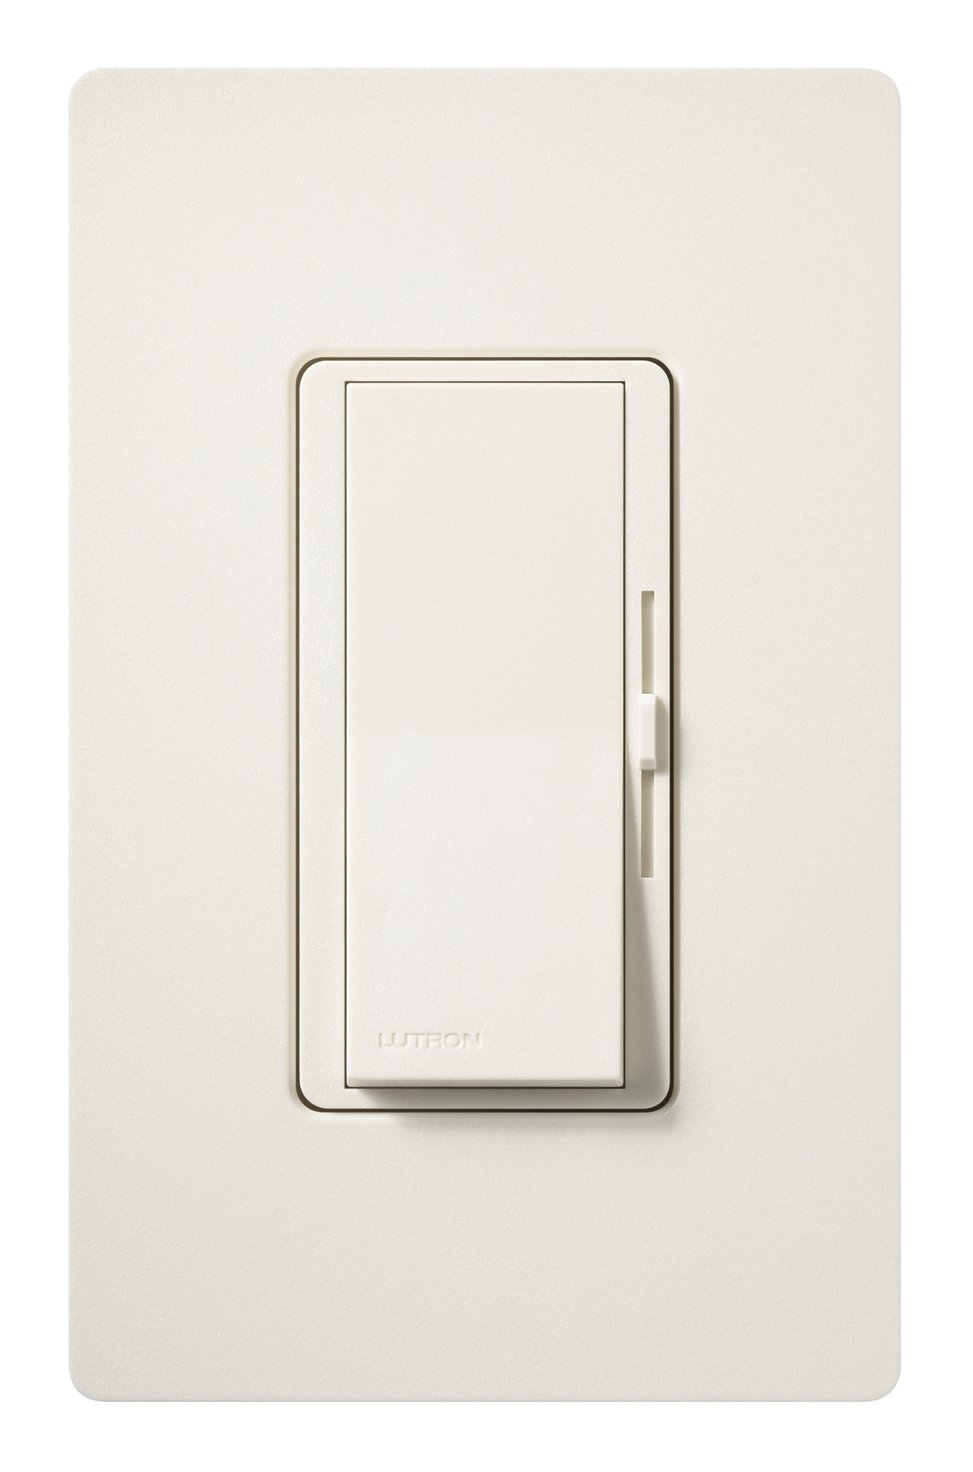 Lutron Electronics Co Dvscfsq F Bi Diva Satin Colors Fan Control 3 Way Dimmer Switch Biscuit Ceiling Wall Controls